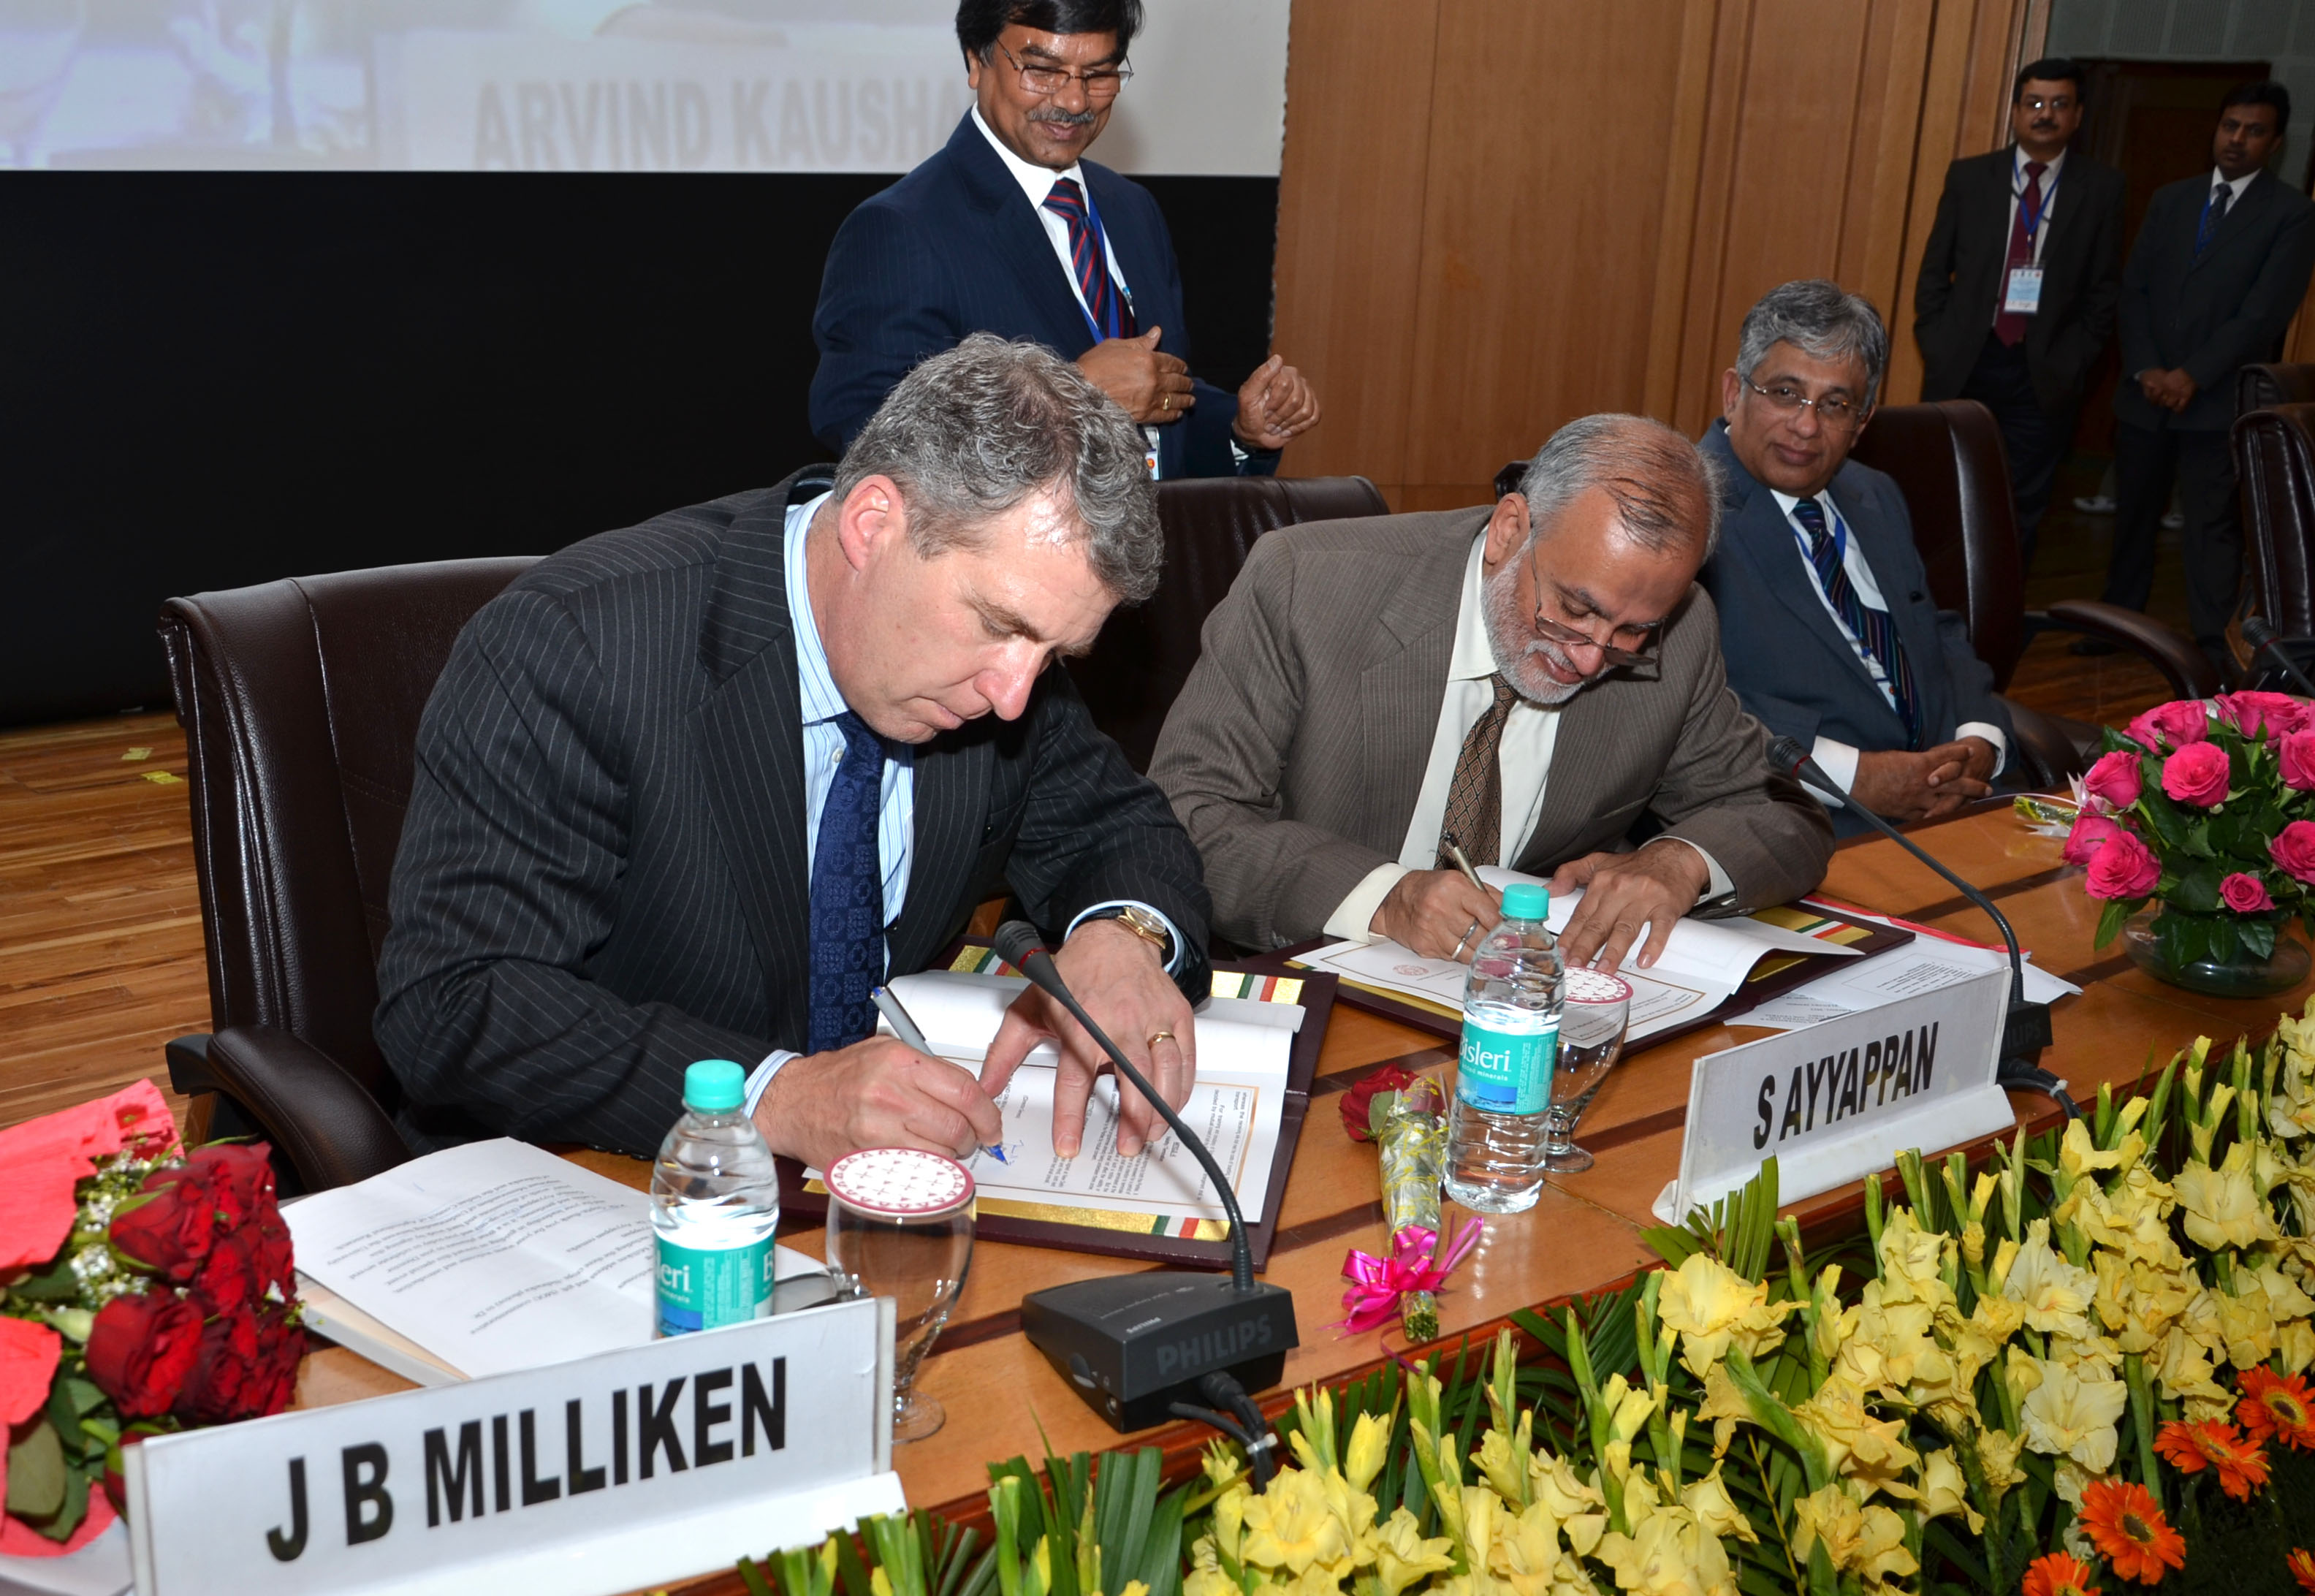 University of Nebraska President James B. Milliken and Dr. S. Ayyappan, Director General of the Indian Council of Agricultural Research, signed the Memorandum of Understanding between the two institutions.